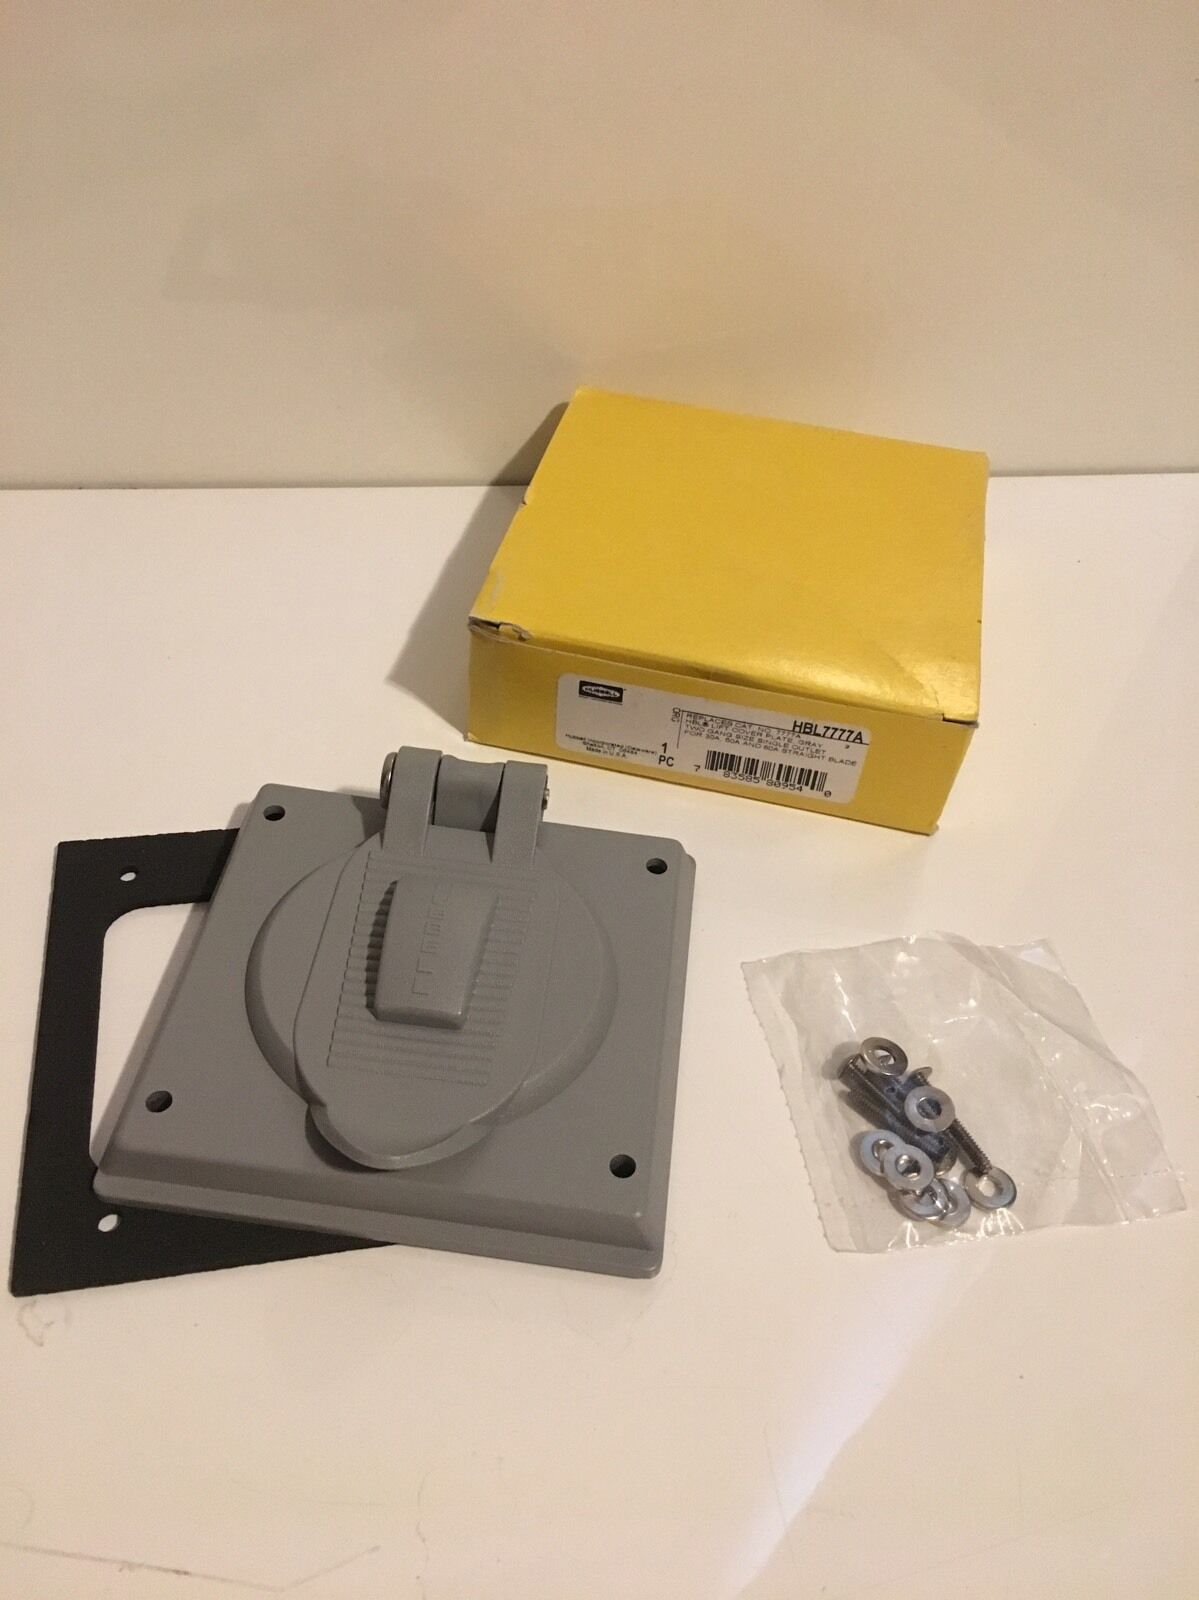 Hubbell Wiring Device Kellems Hbl7777a Weatherproof Cover 1 Of 3only Available Thermoplastic